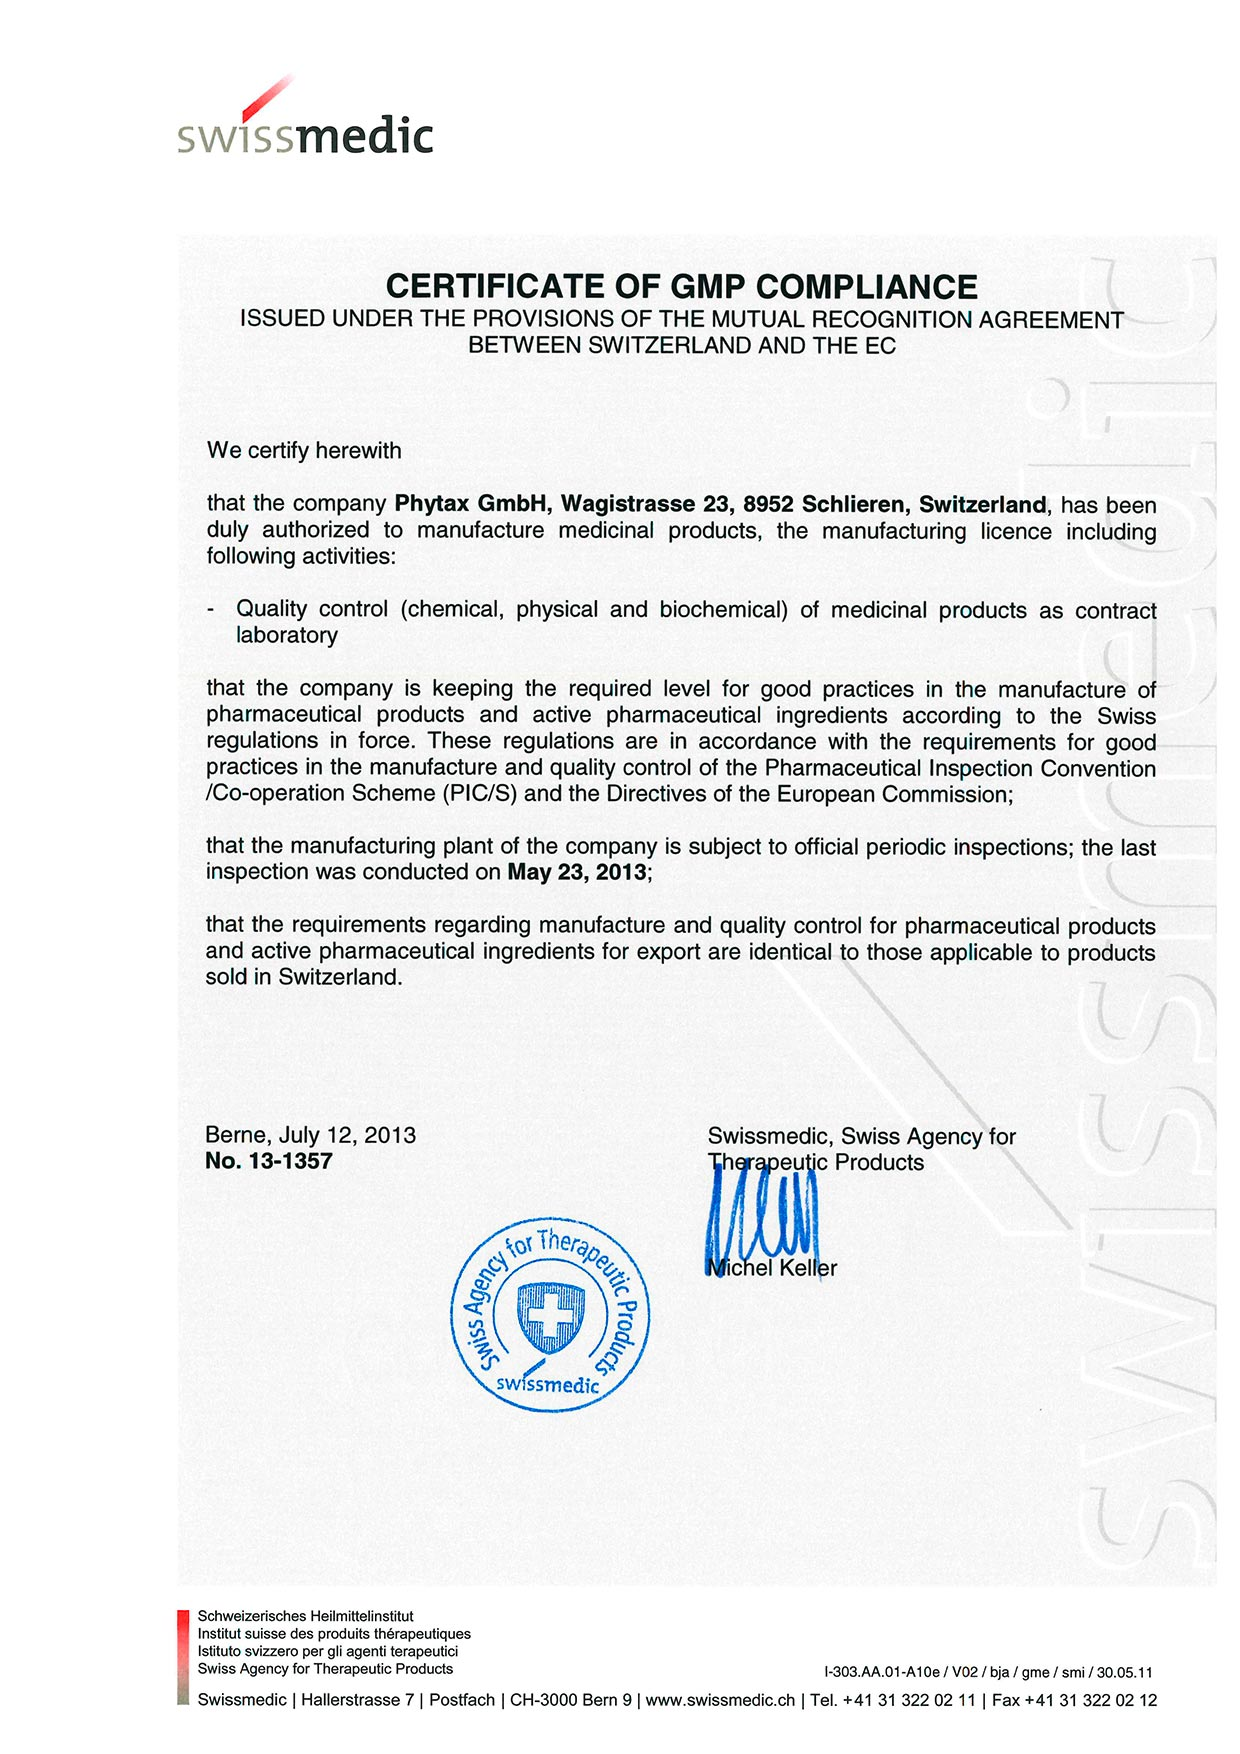 GMP Certificate of Compliance